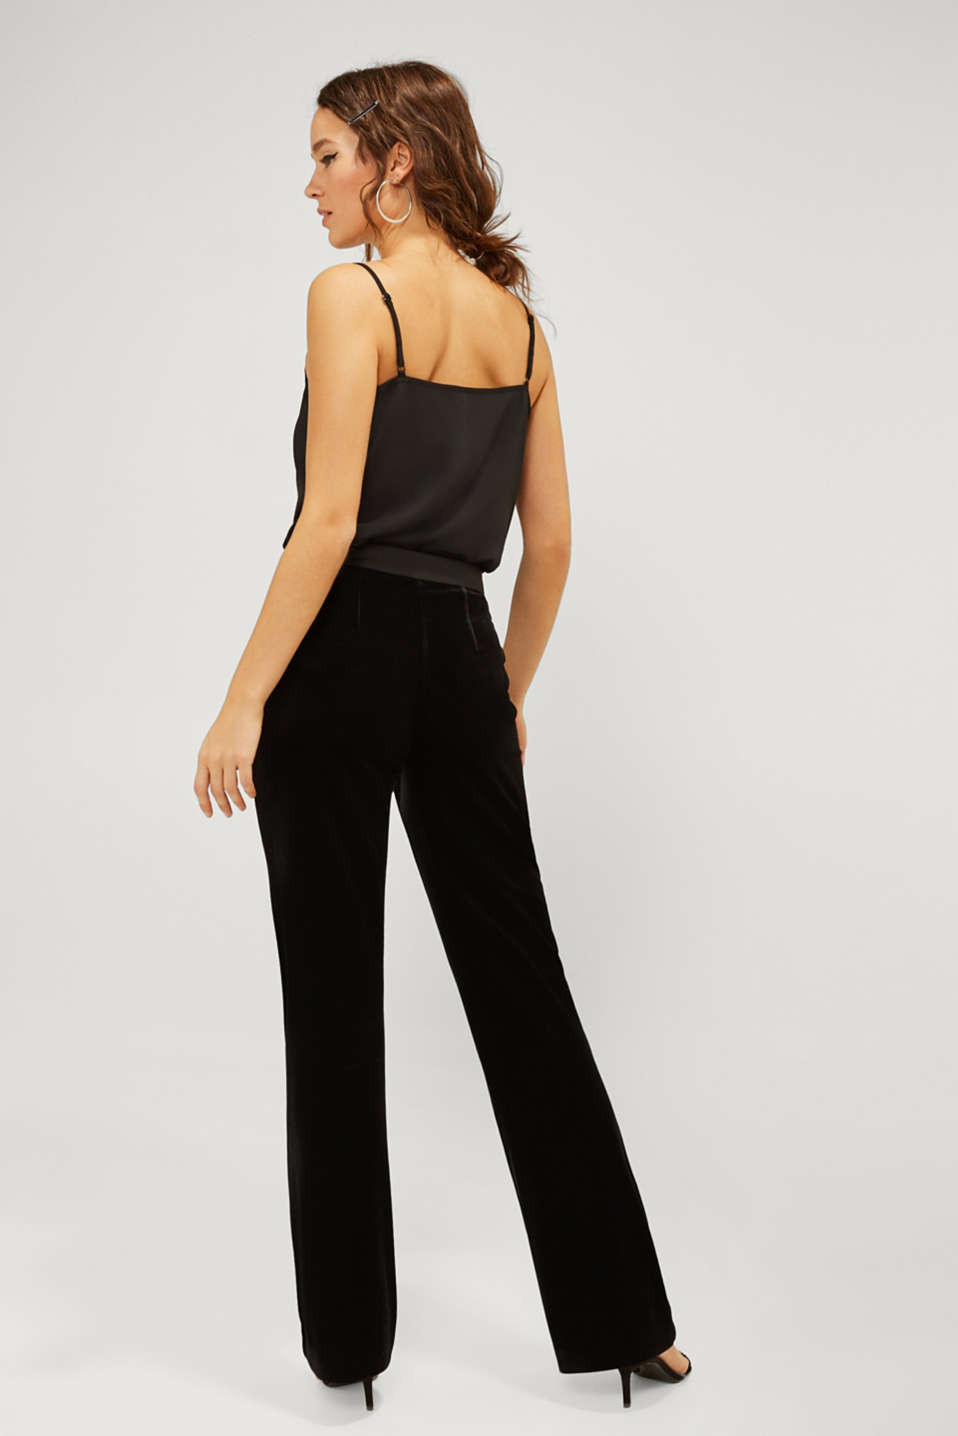 VELVET Mix + Match stretch trousers, BLACK, detail image number 3